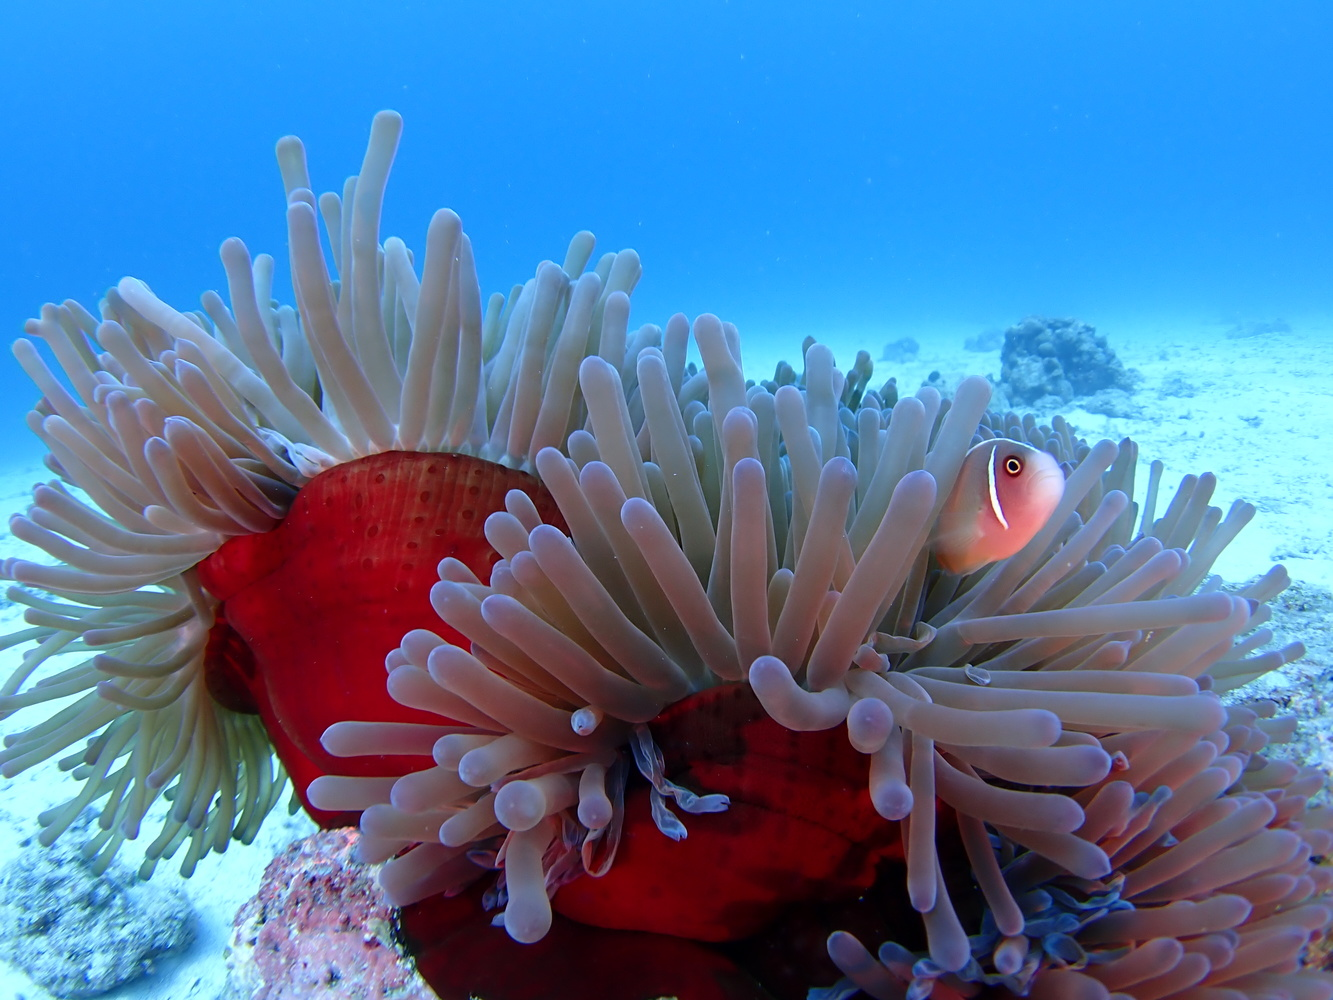 an underwater photo showing a sea anenome and fish